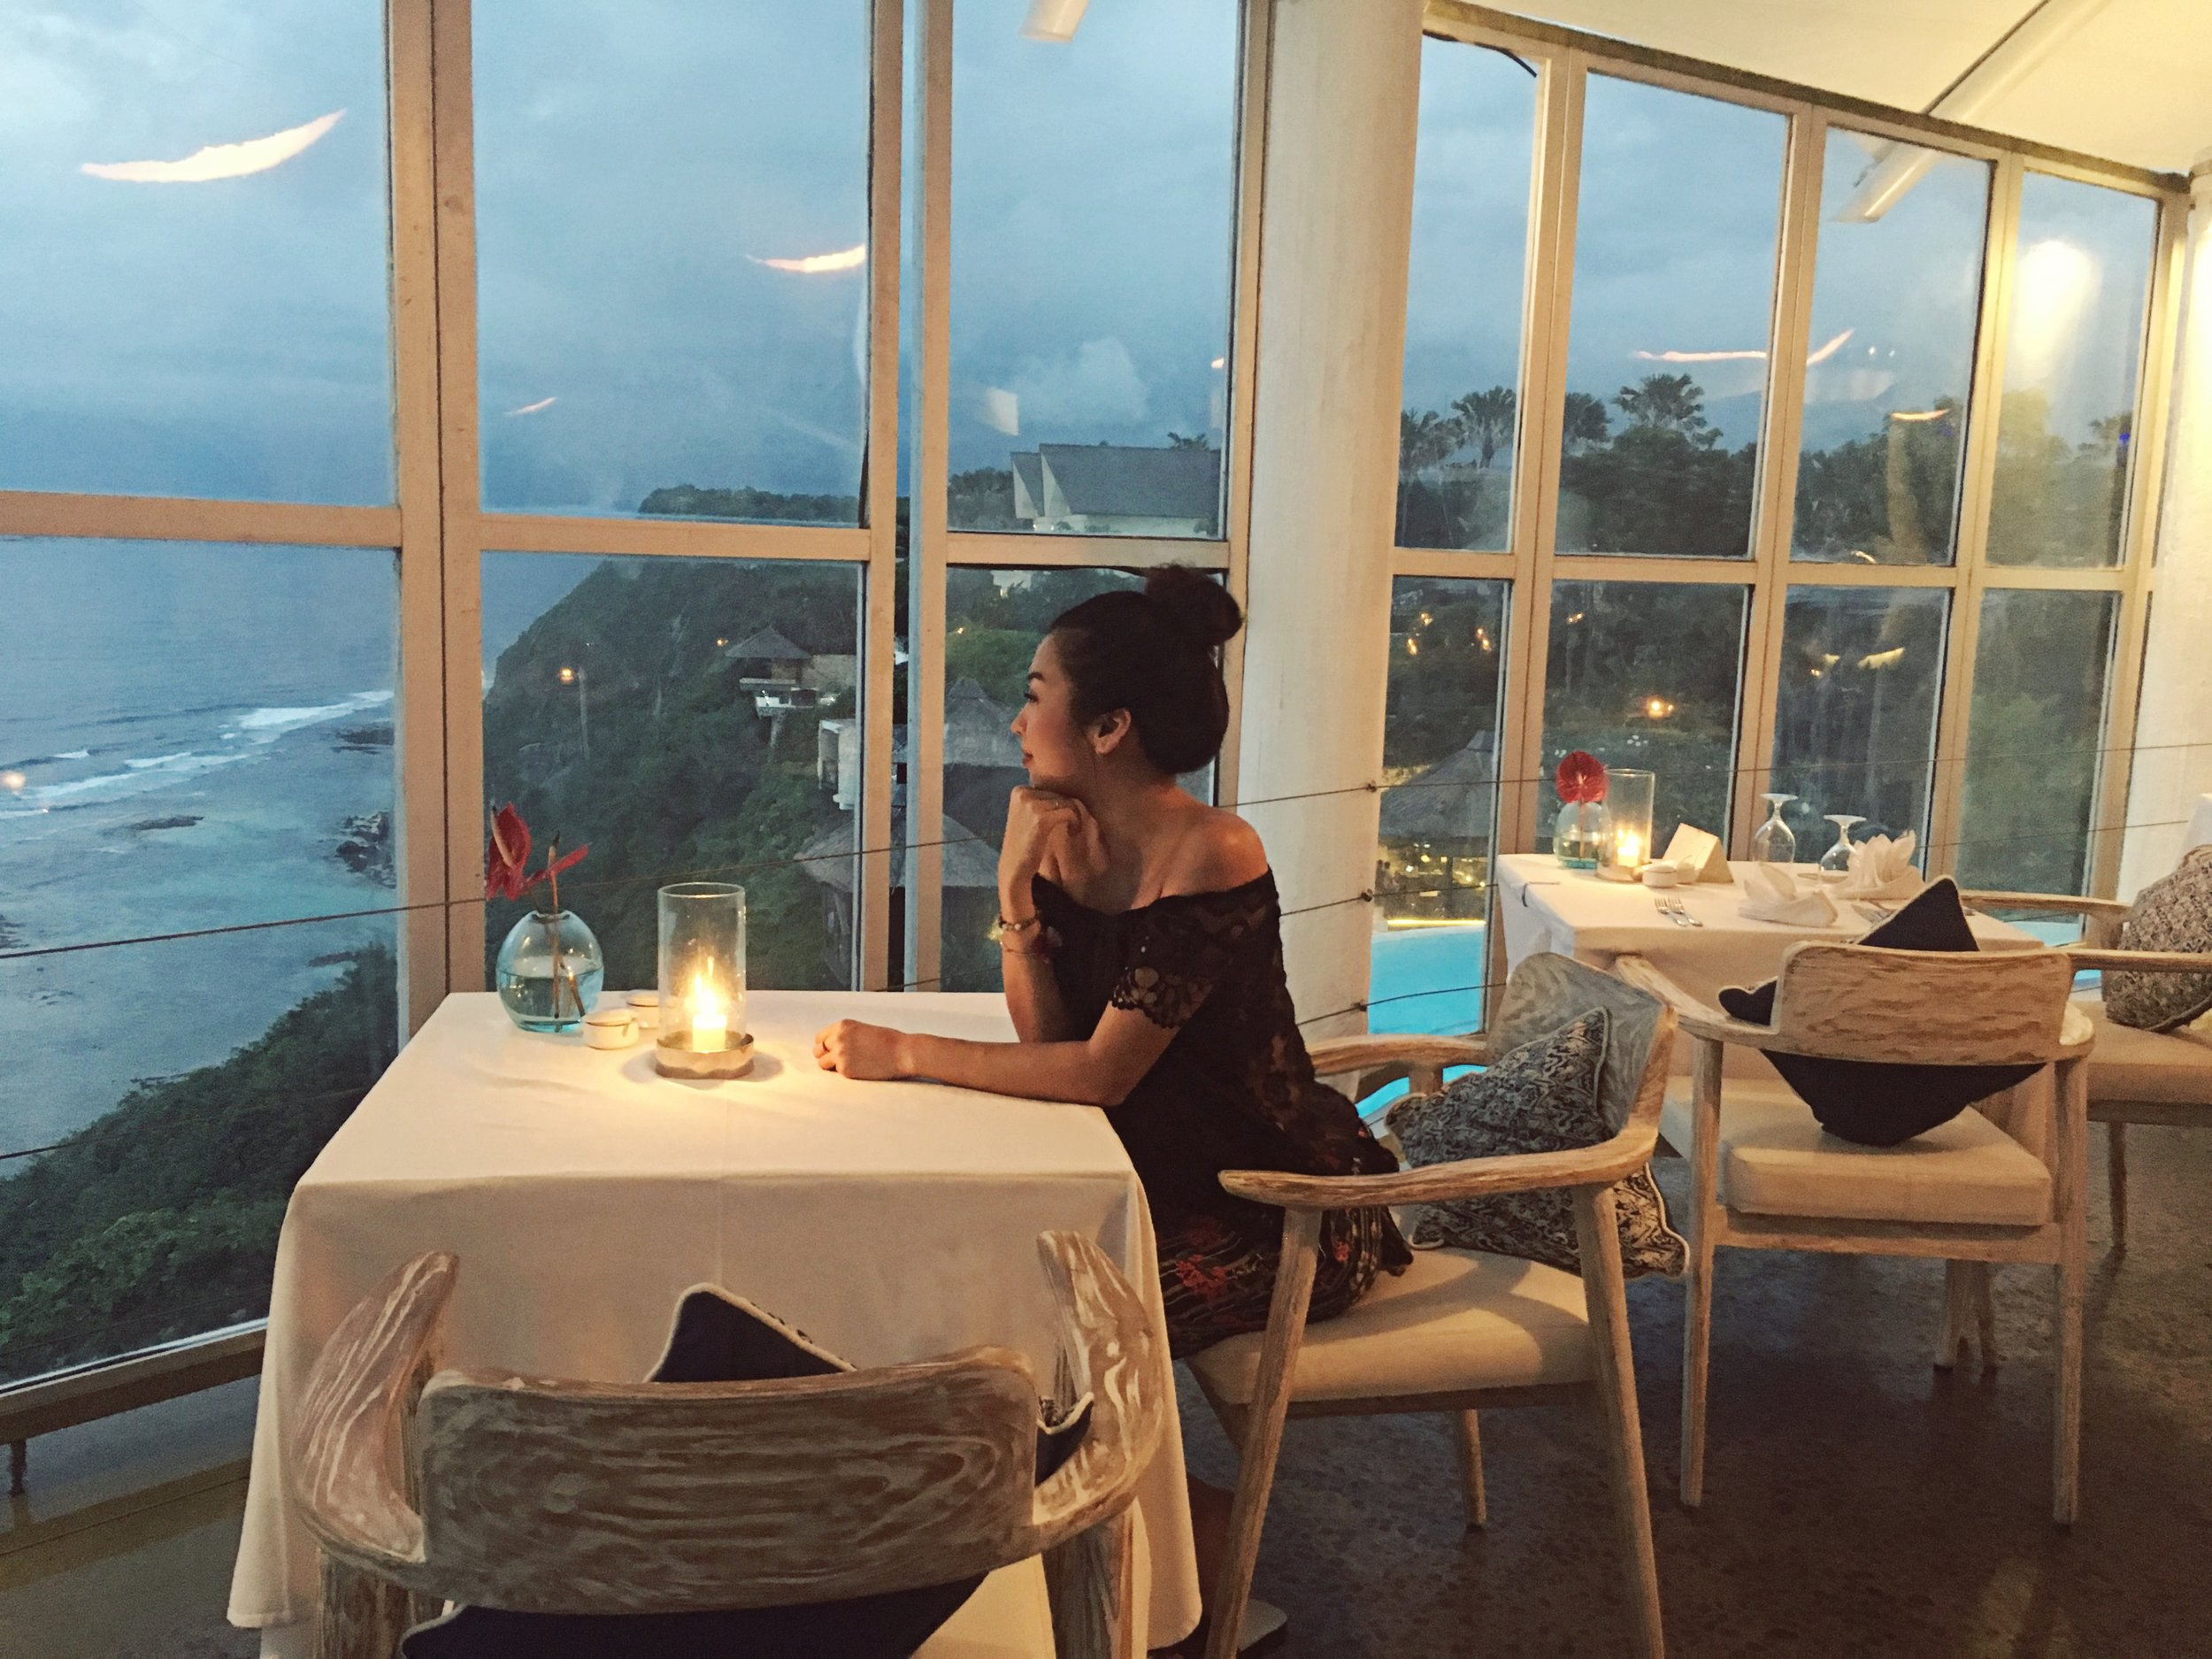 Still daydreaming about the view . . . * sigh - Sitting on the edge of a cliff over looking the ocean while the sun sets is absolutely everything. Add a delicious meal, glass of wine and it really turns into a